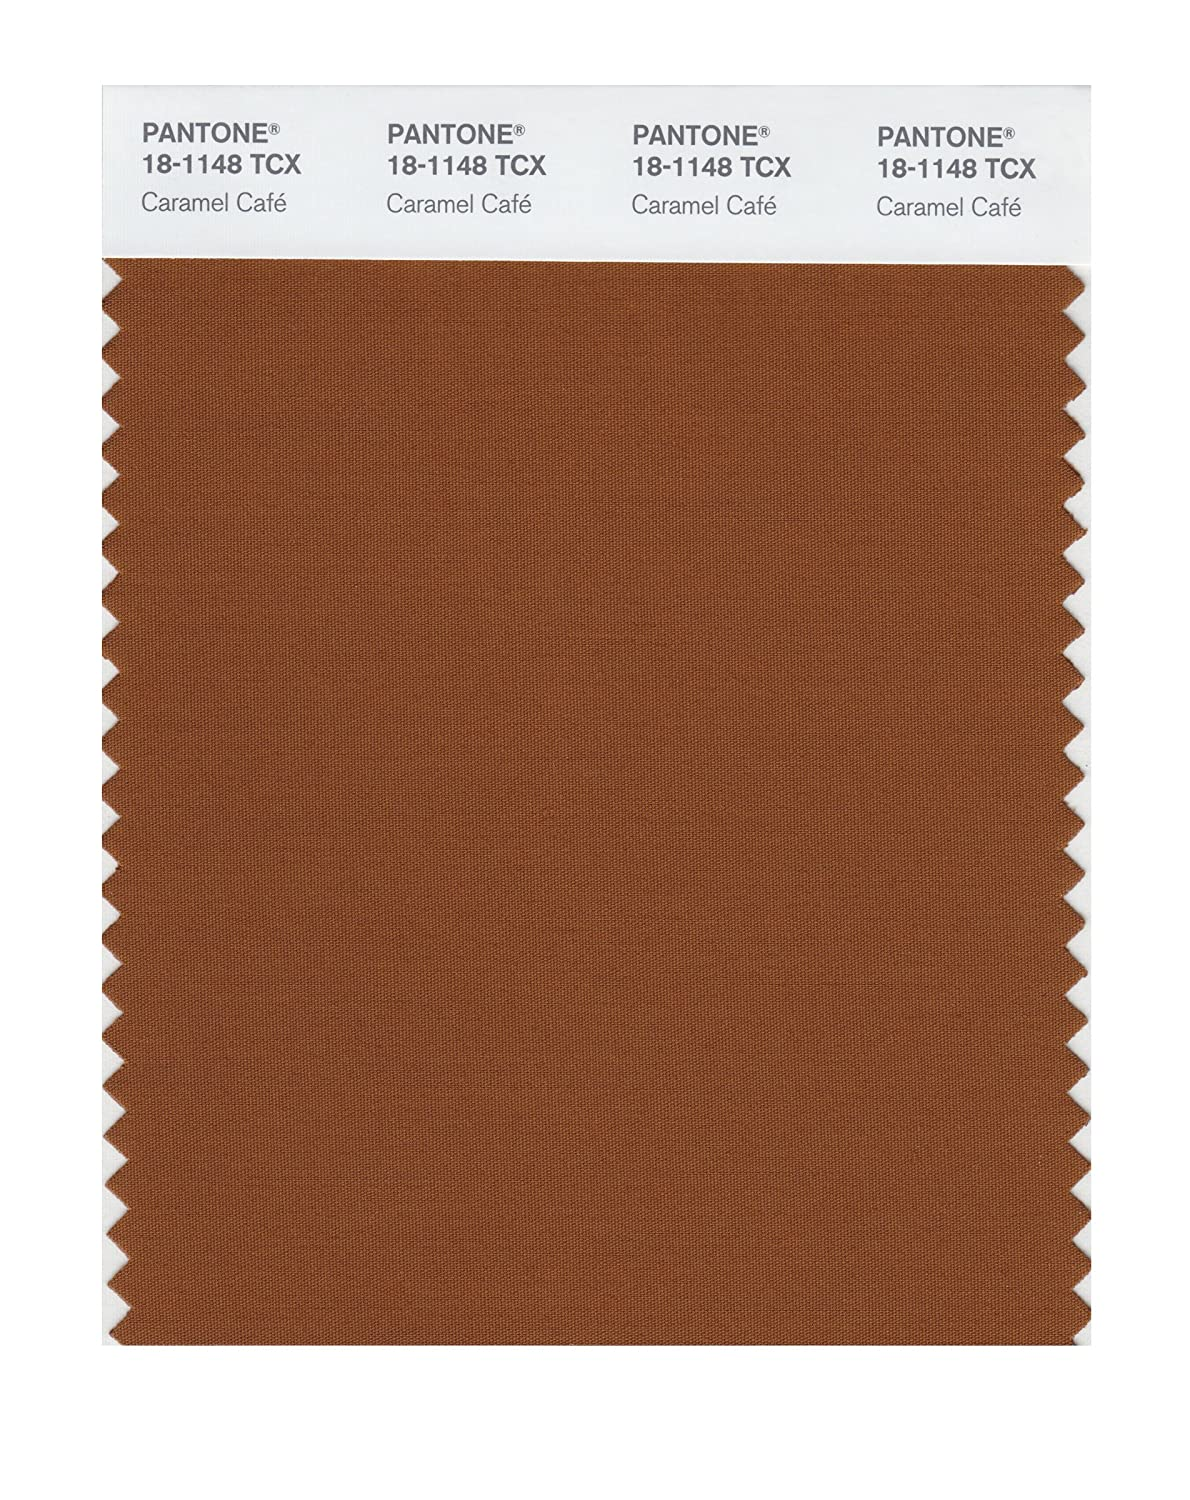 Pantone 18-1148 TCX Smart Color Swatch Card, Caramel Café - House Paint -  Amazon.com